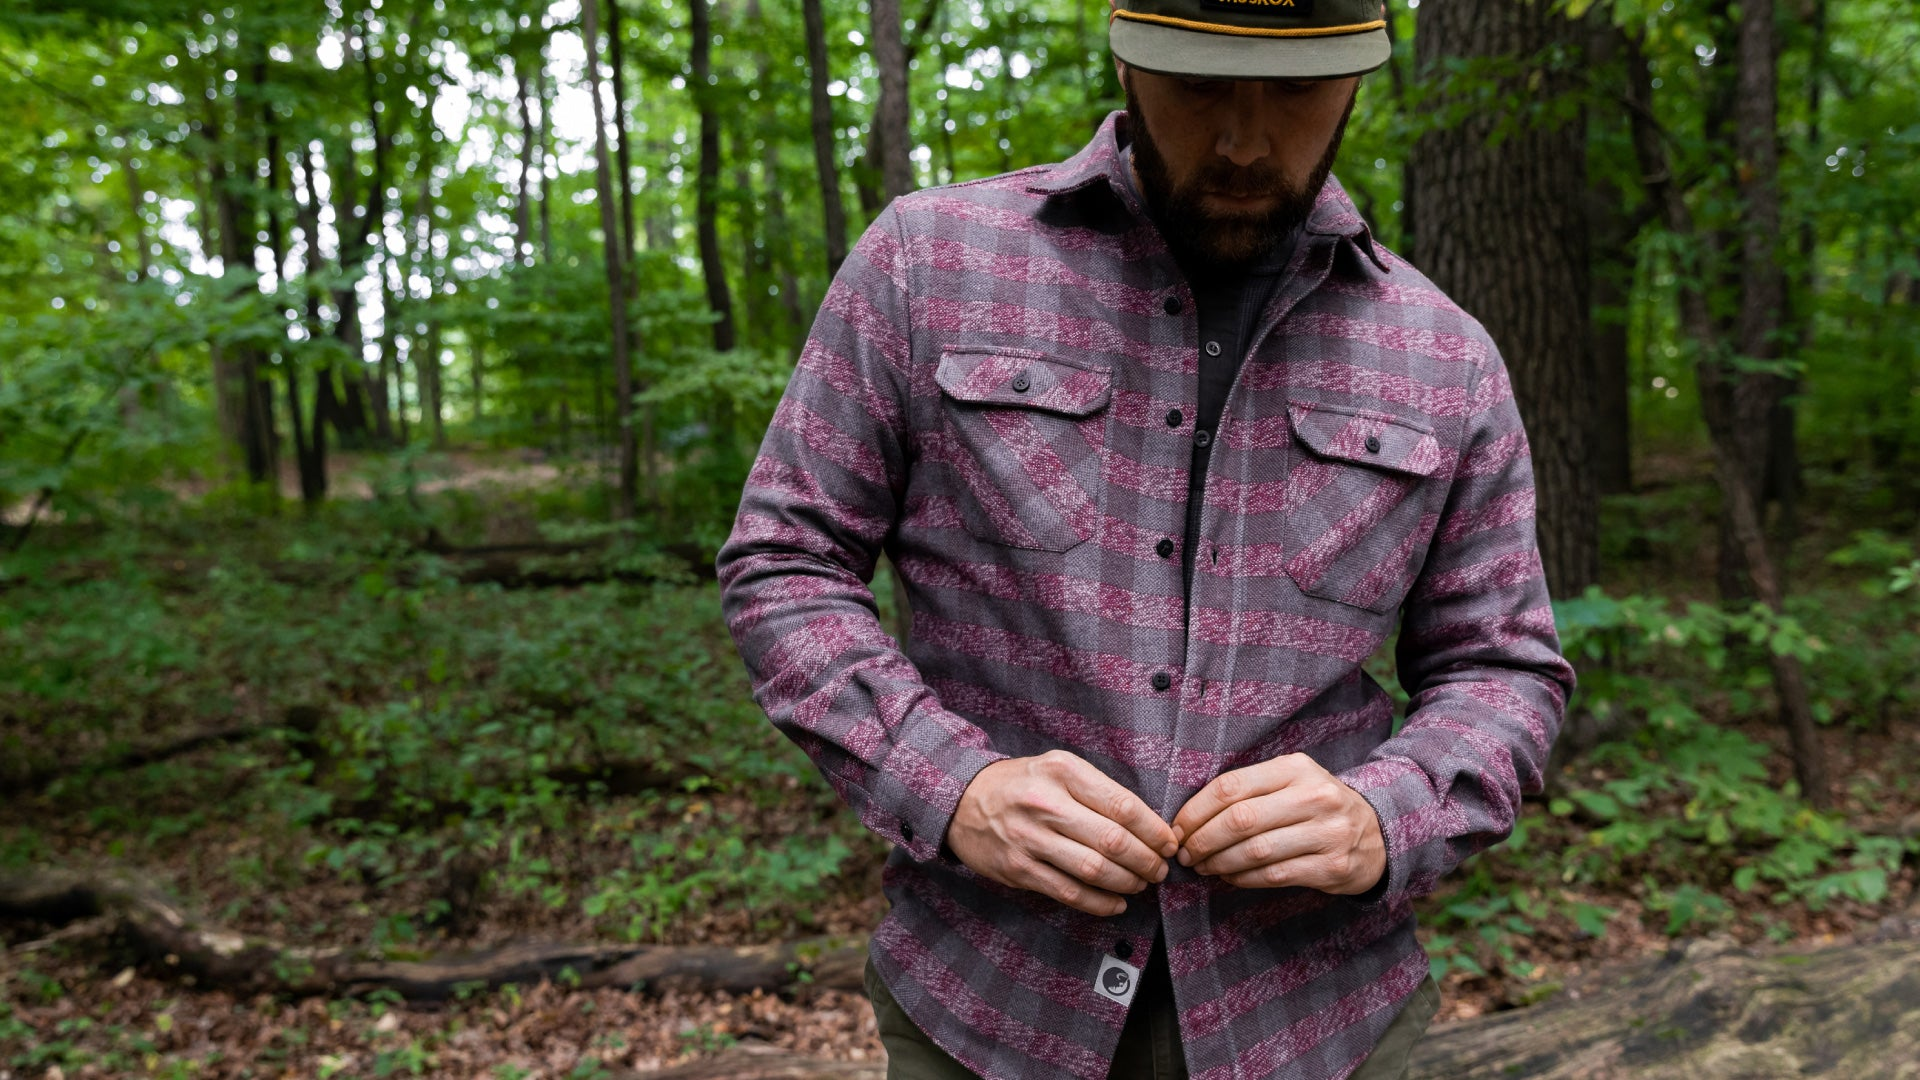 The Grand Flannel By MuskOx Apparel, Heavyweight Flannel Shirt, Comfortable Flannel Shirt By MuskOx Clothing